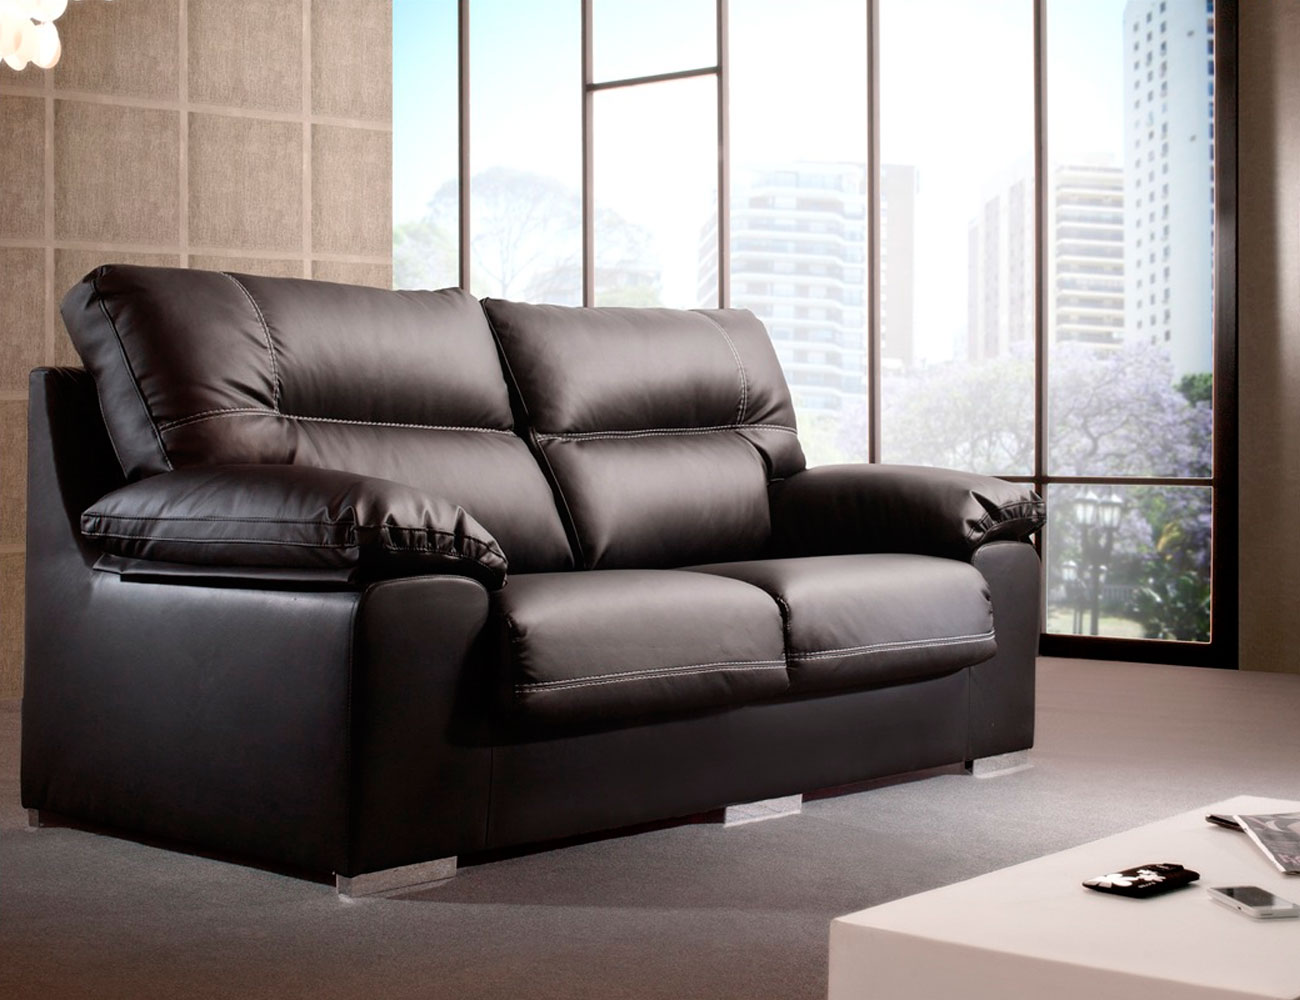 Sofa 3 plazas polipiel negro16